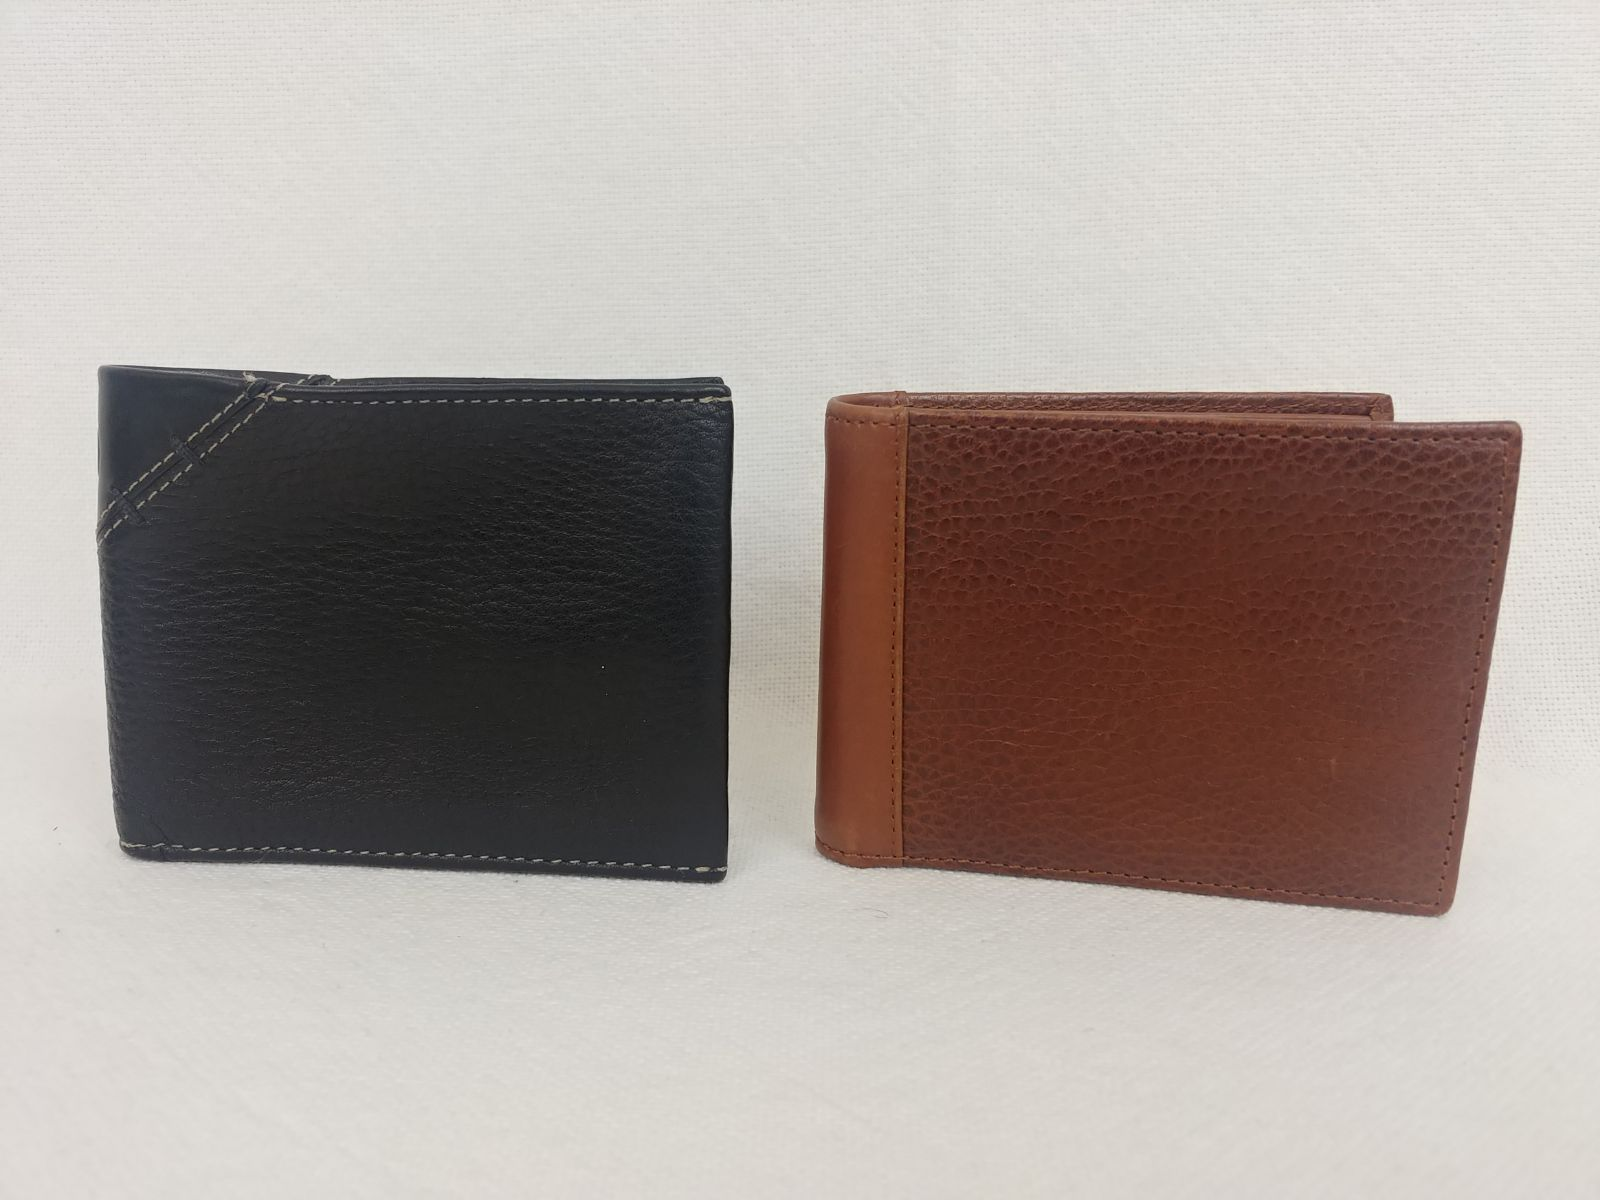 2 cole haan leather bifold wallets